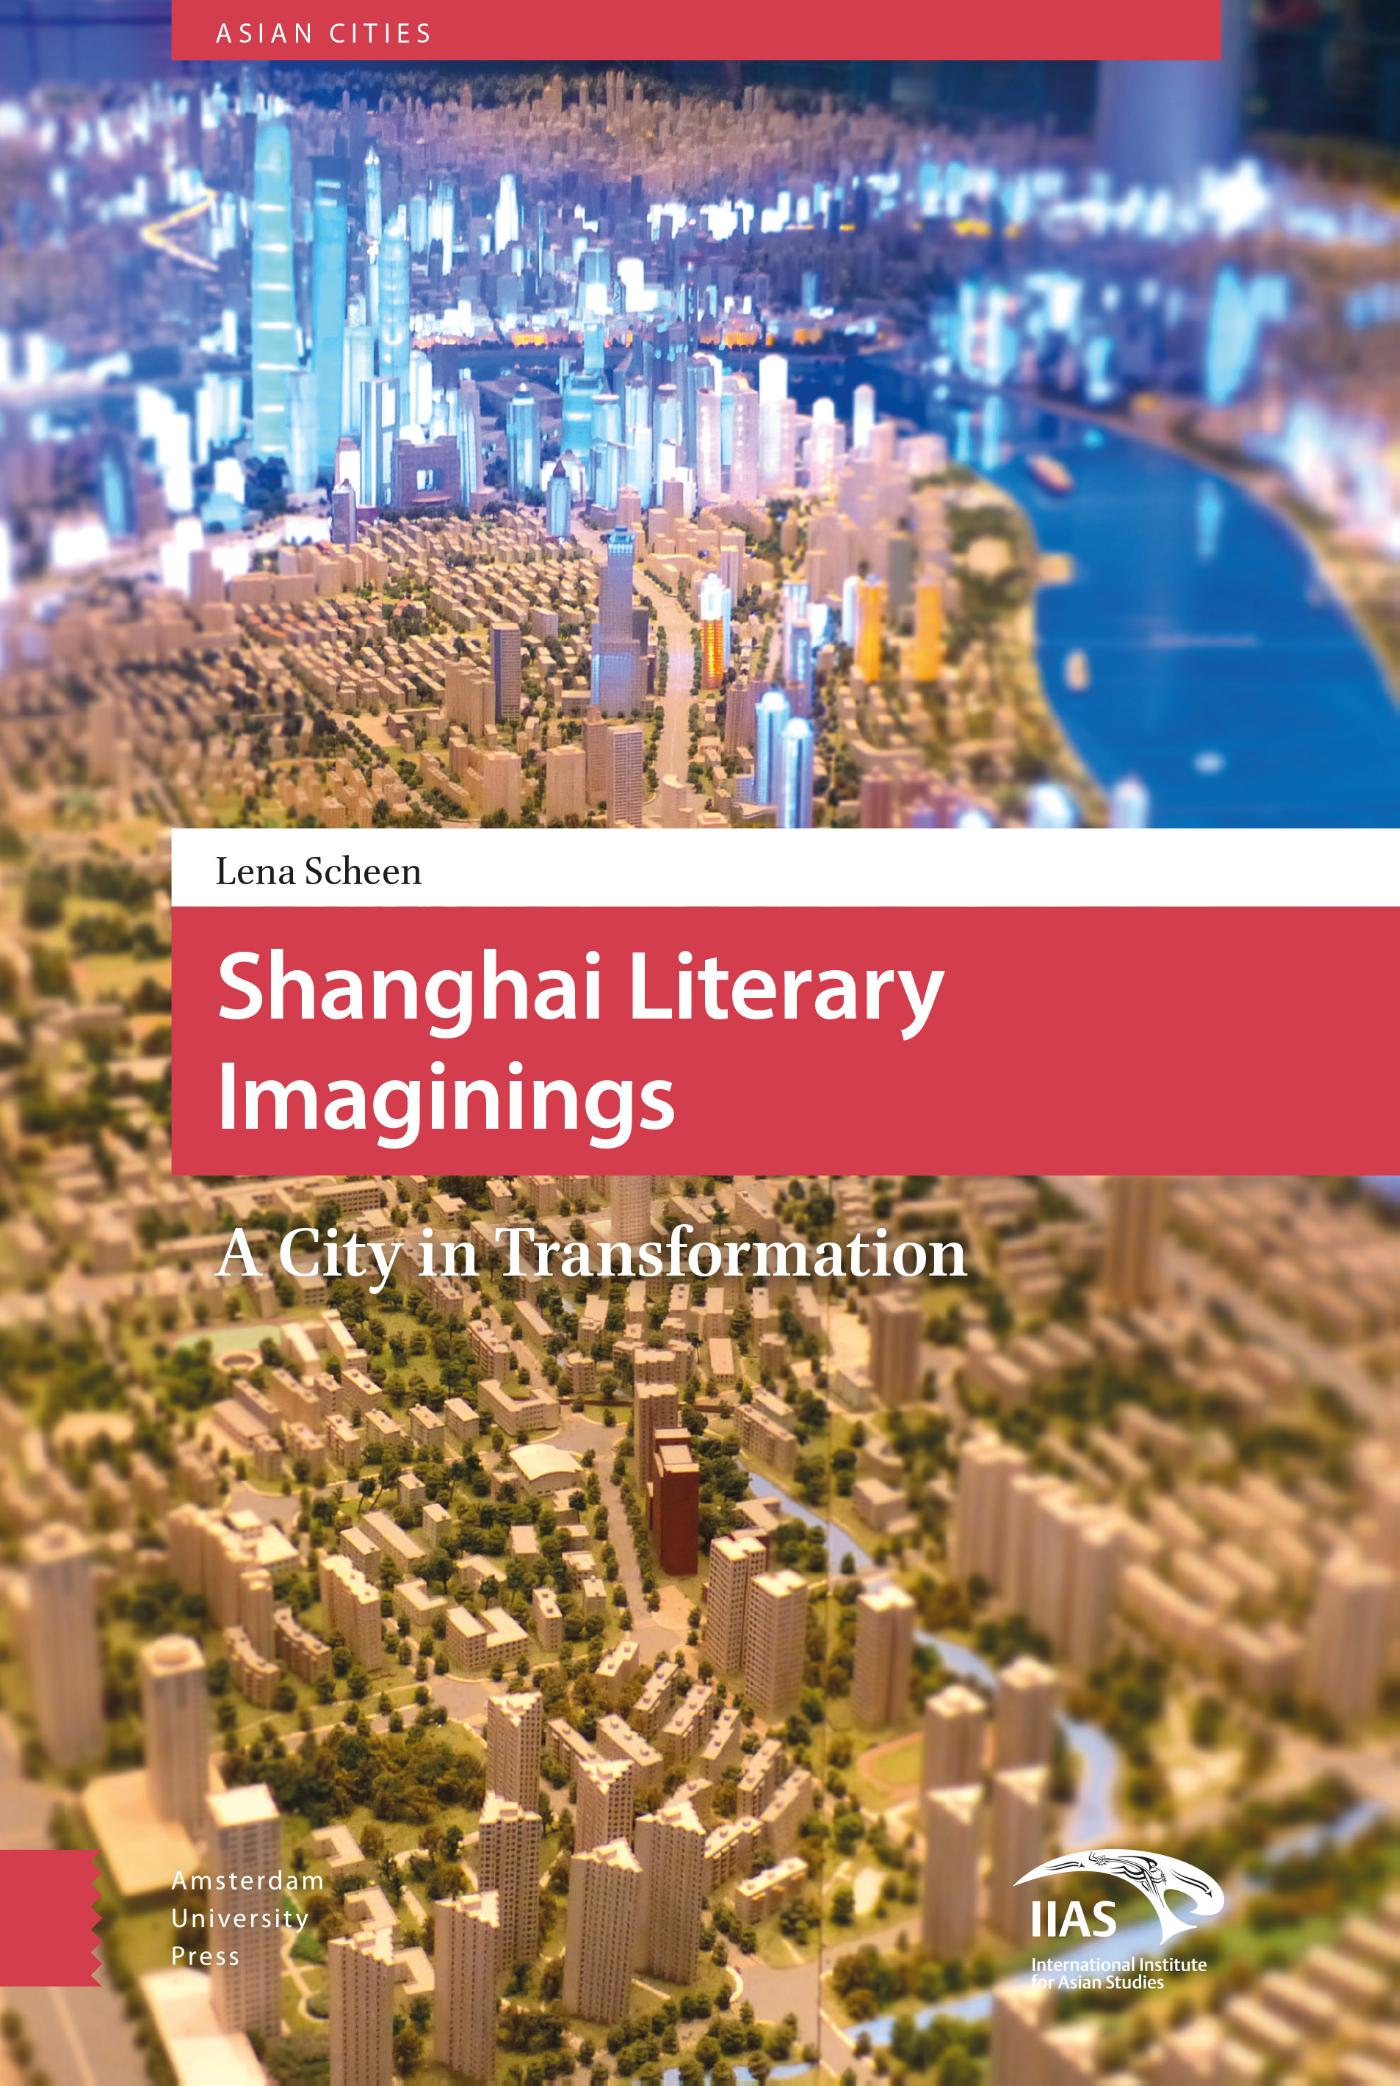 Asian Cities Shanghai Literary Imaginings